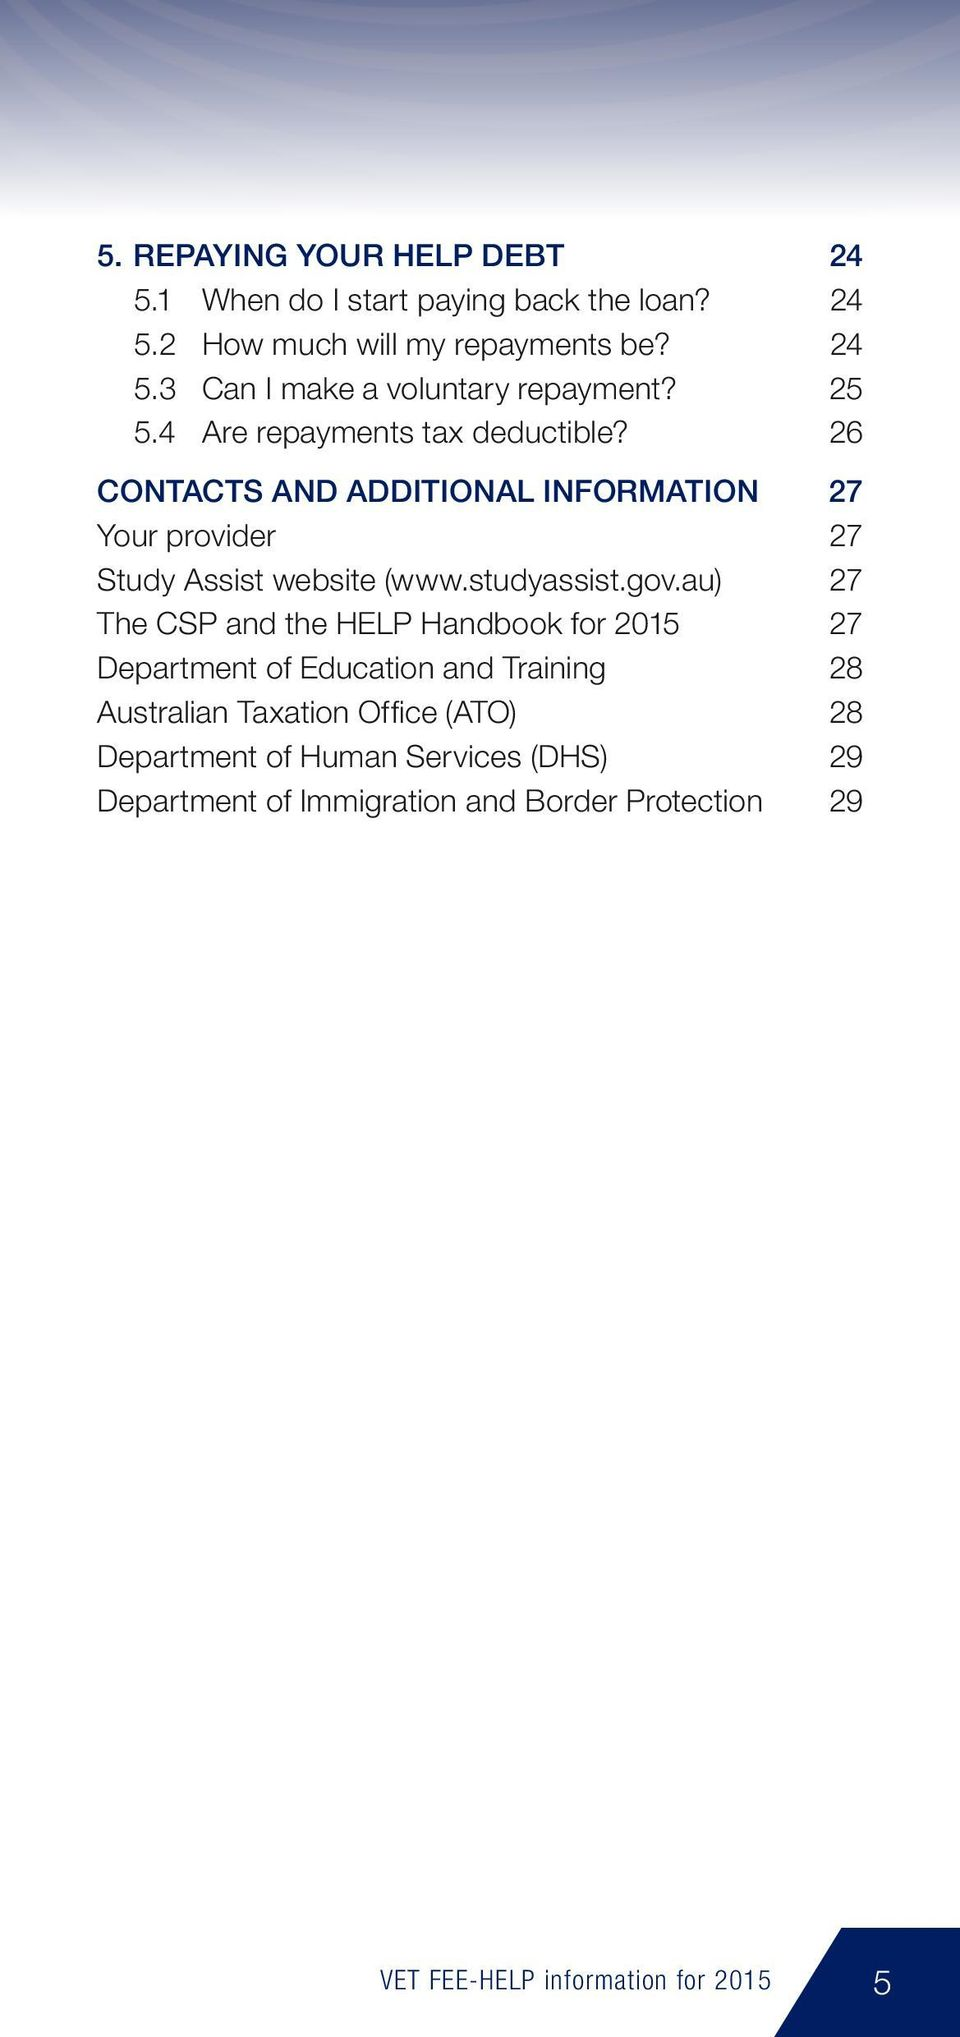 gov.au) 27 The CSP and the HELP Handbook for 2015 27 Department of Education and Training 28 Australian Taxation Office (ATO) 28